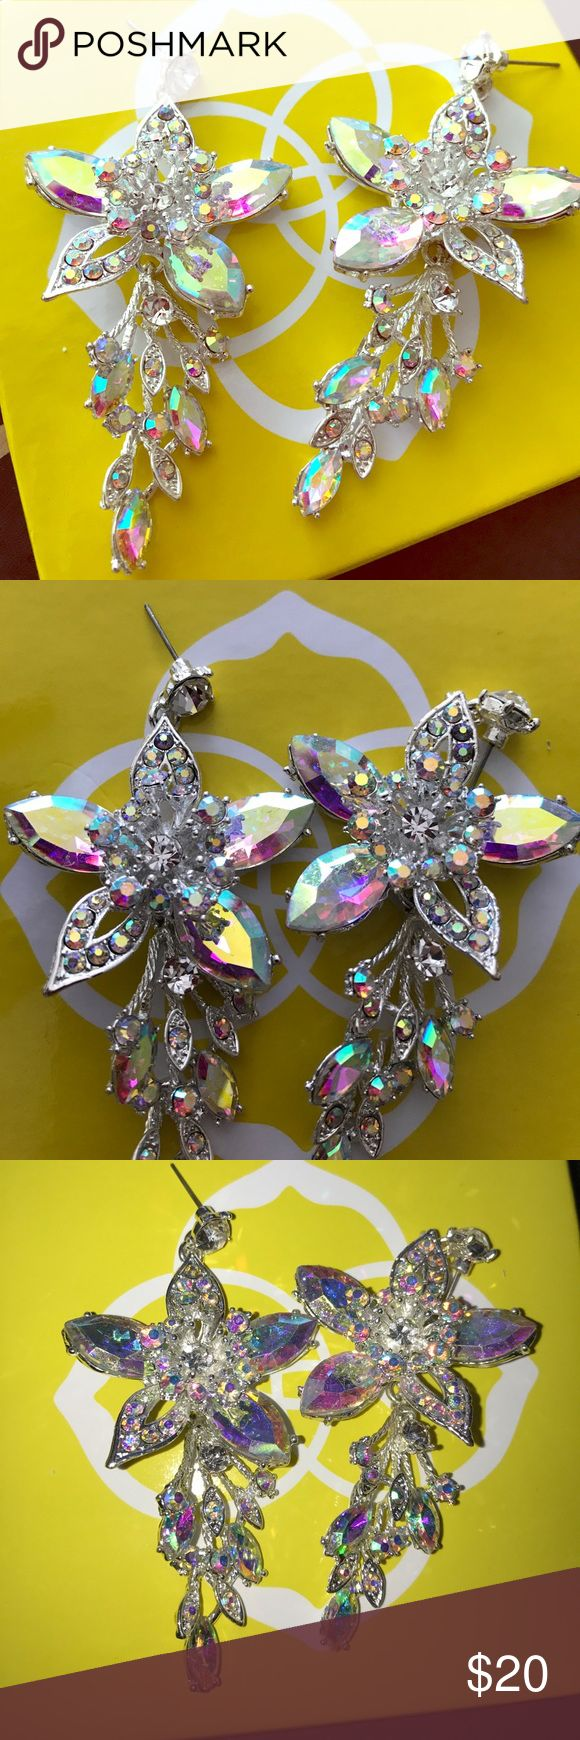 Pageant earrings. Big sparkly pageant earrings. Never worn. No stones missing. Jewelry Earrings